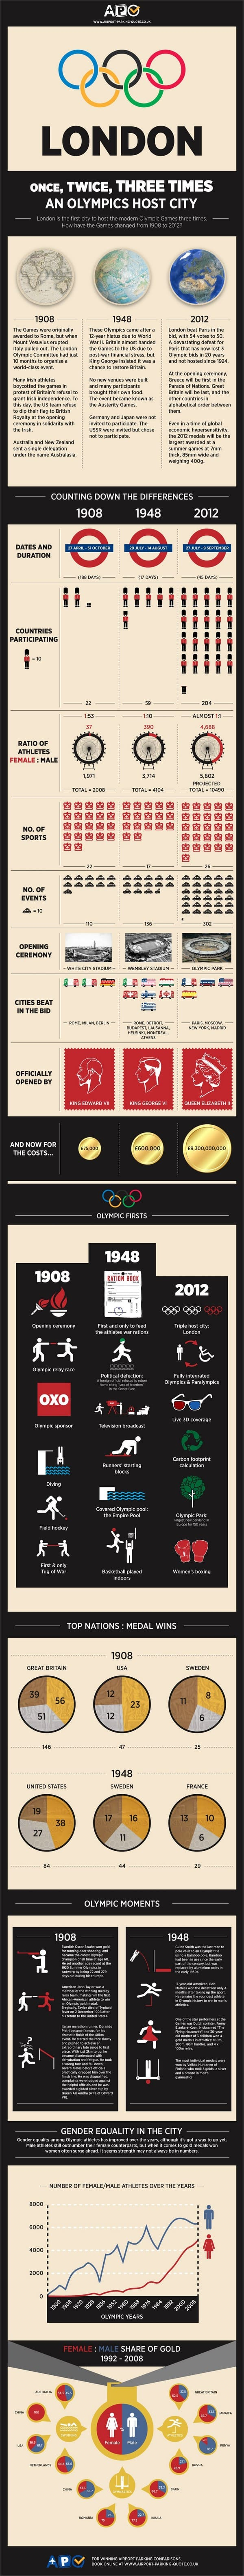 Comparing the 1908 1948 and 2012 London Olympics Infographic